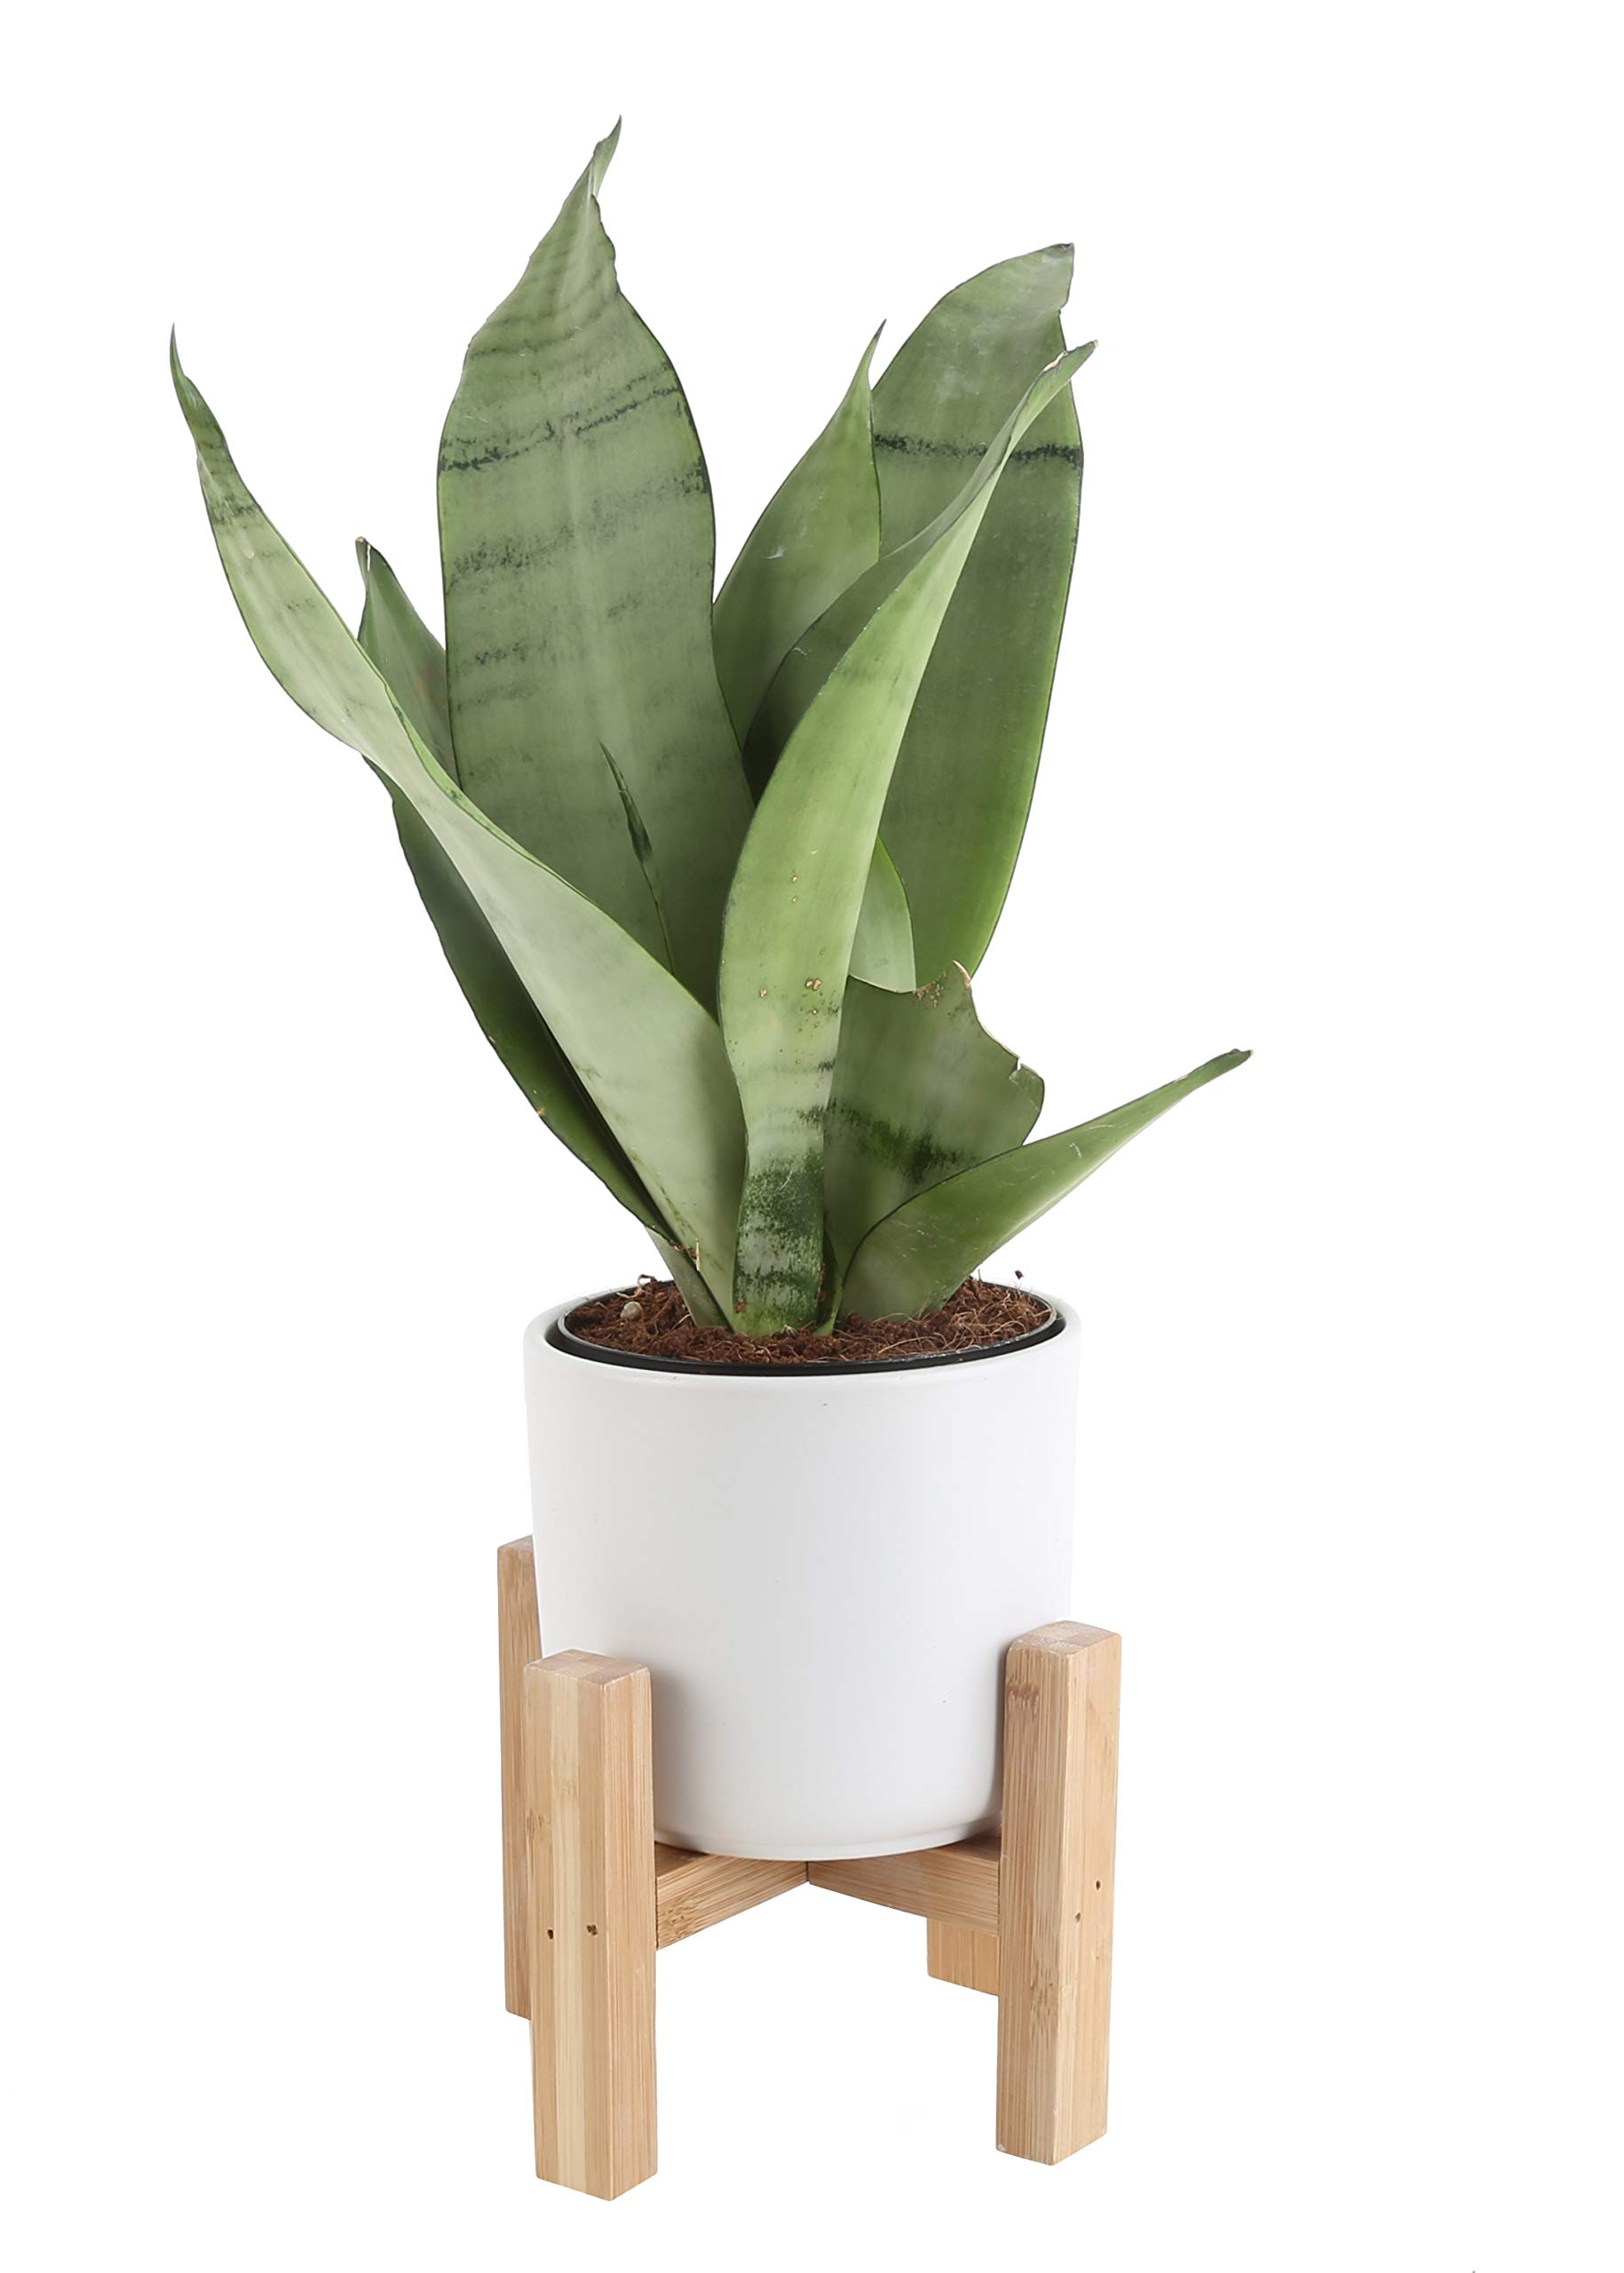 Costa Farms Snake Plant, Sansevieria, with 4.25-Inch Wide Mid-Century Modern Planter and Plant Stand Set, White, Fits on Shelves/Tabletops by Costa Farms (Image #1)